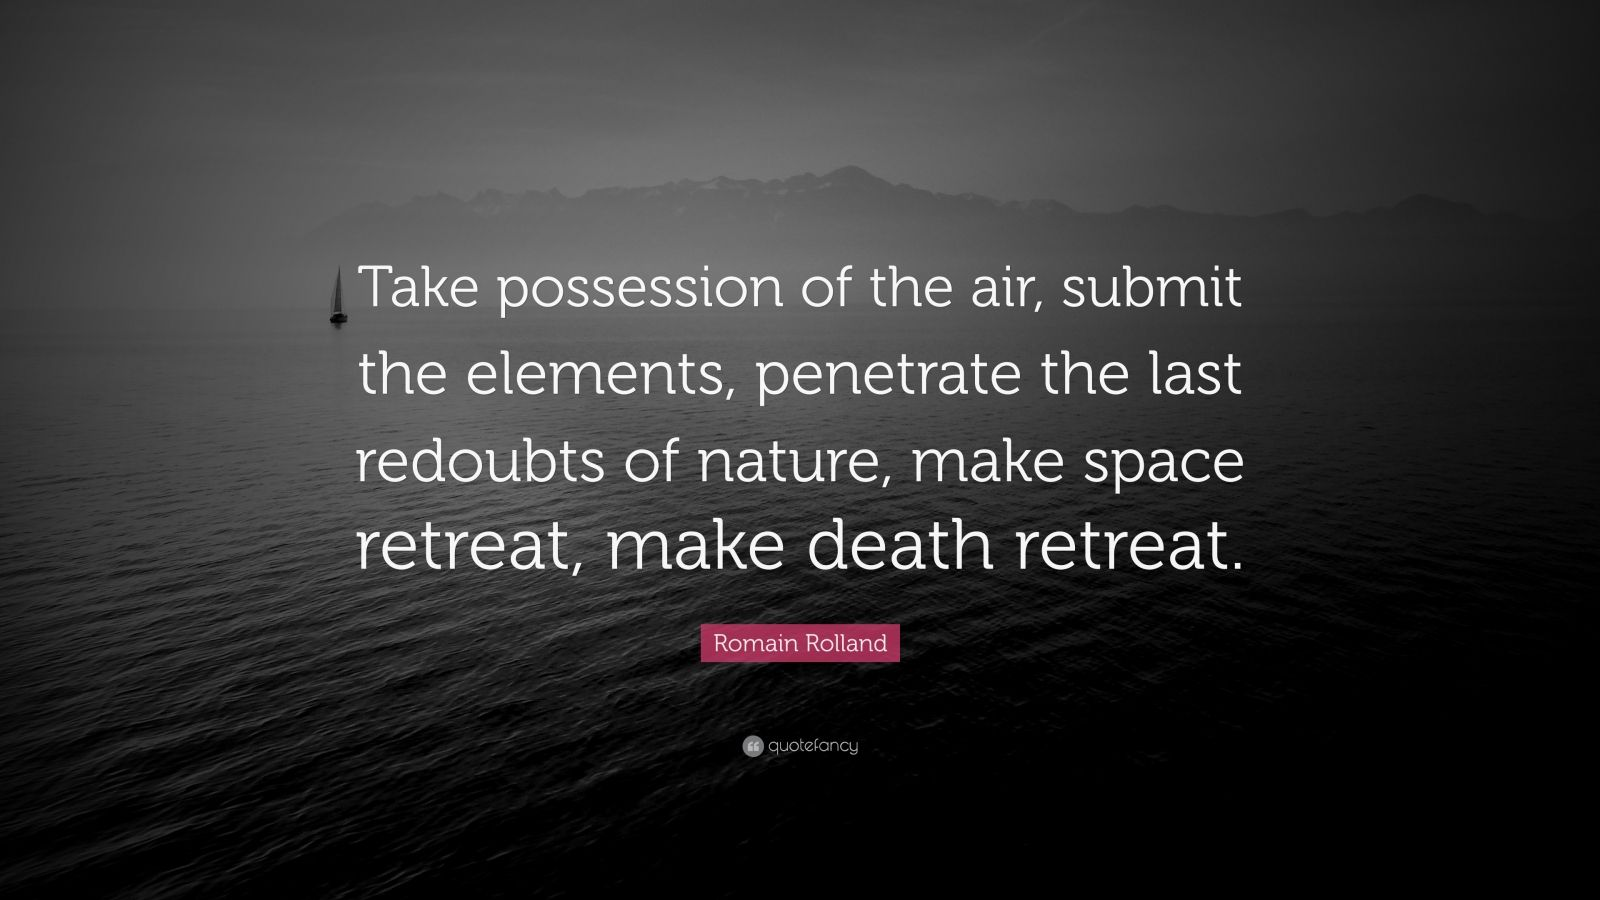 """Romain Rolland Quote: """"Take possession of the air, submit the elements, penetrate the last redoubts of nature, make space retreat, make death retreat."""""""